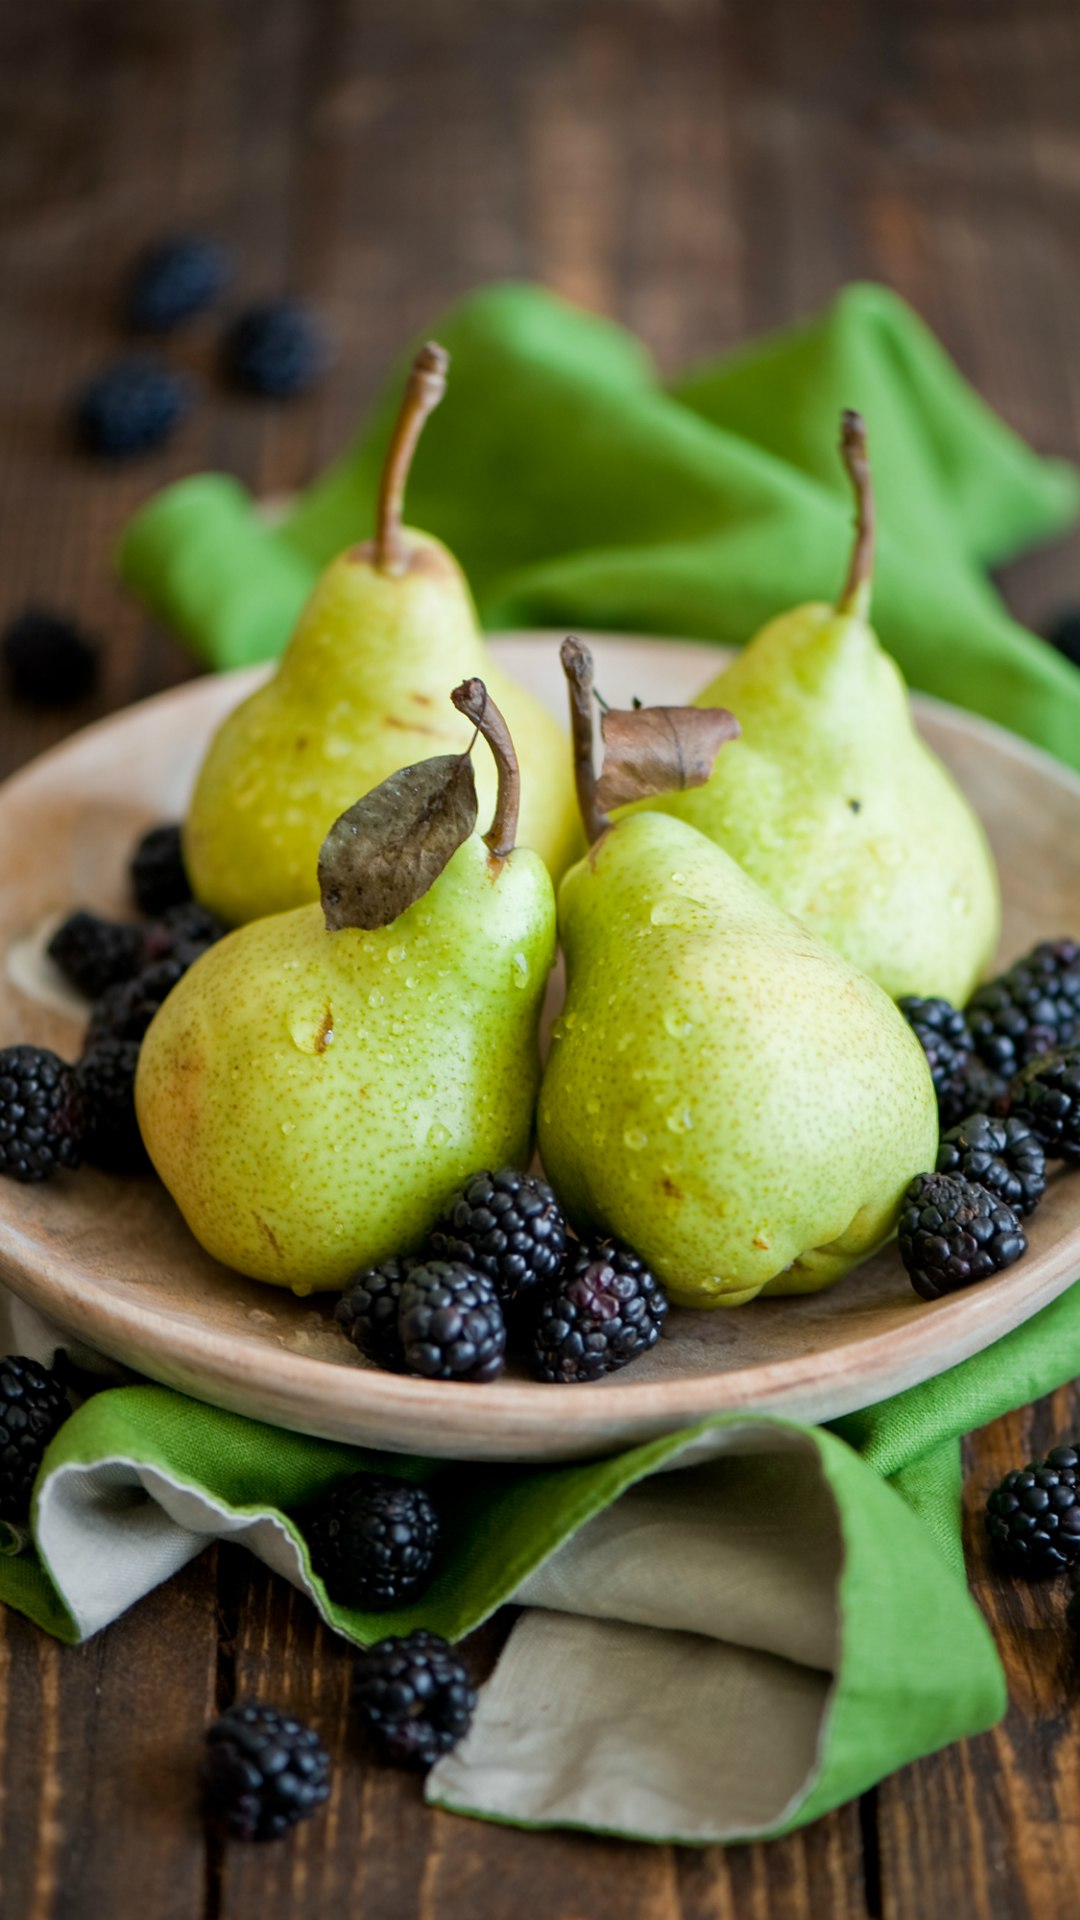 blackberries pear plate food 1080x1920